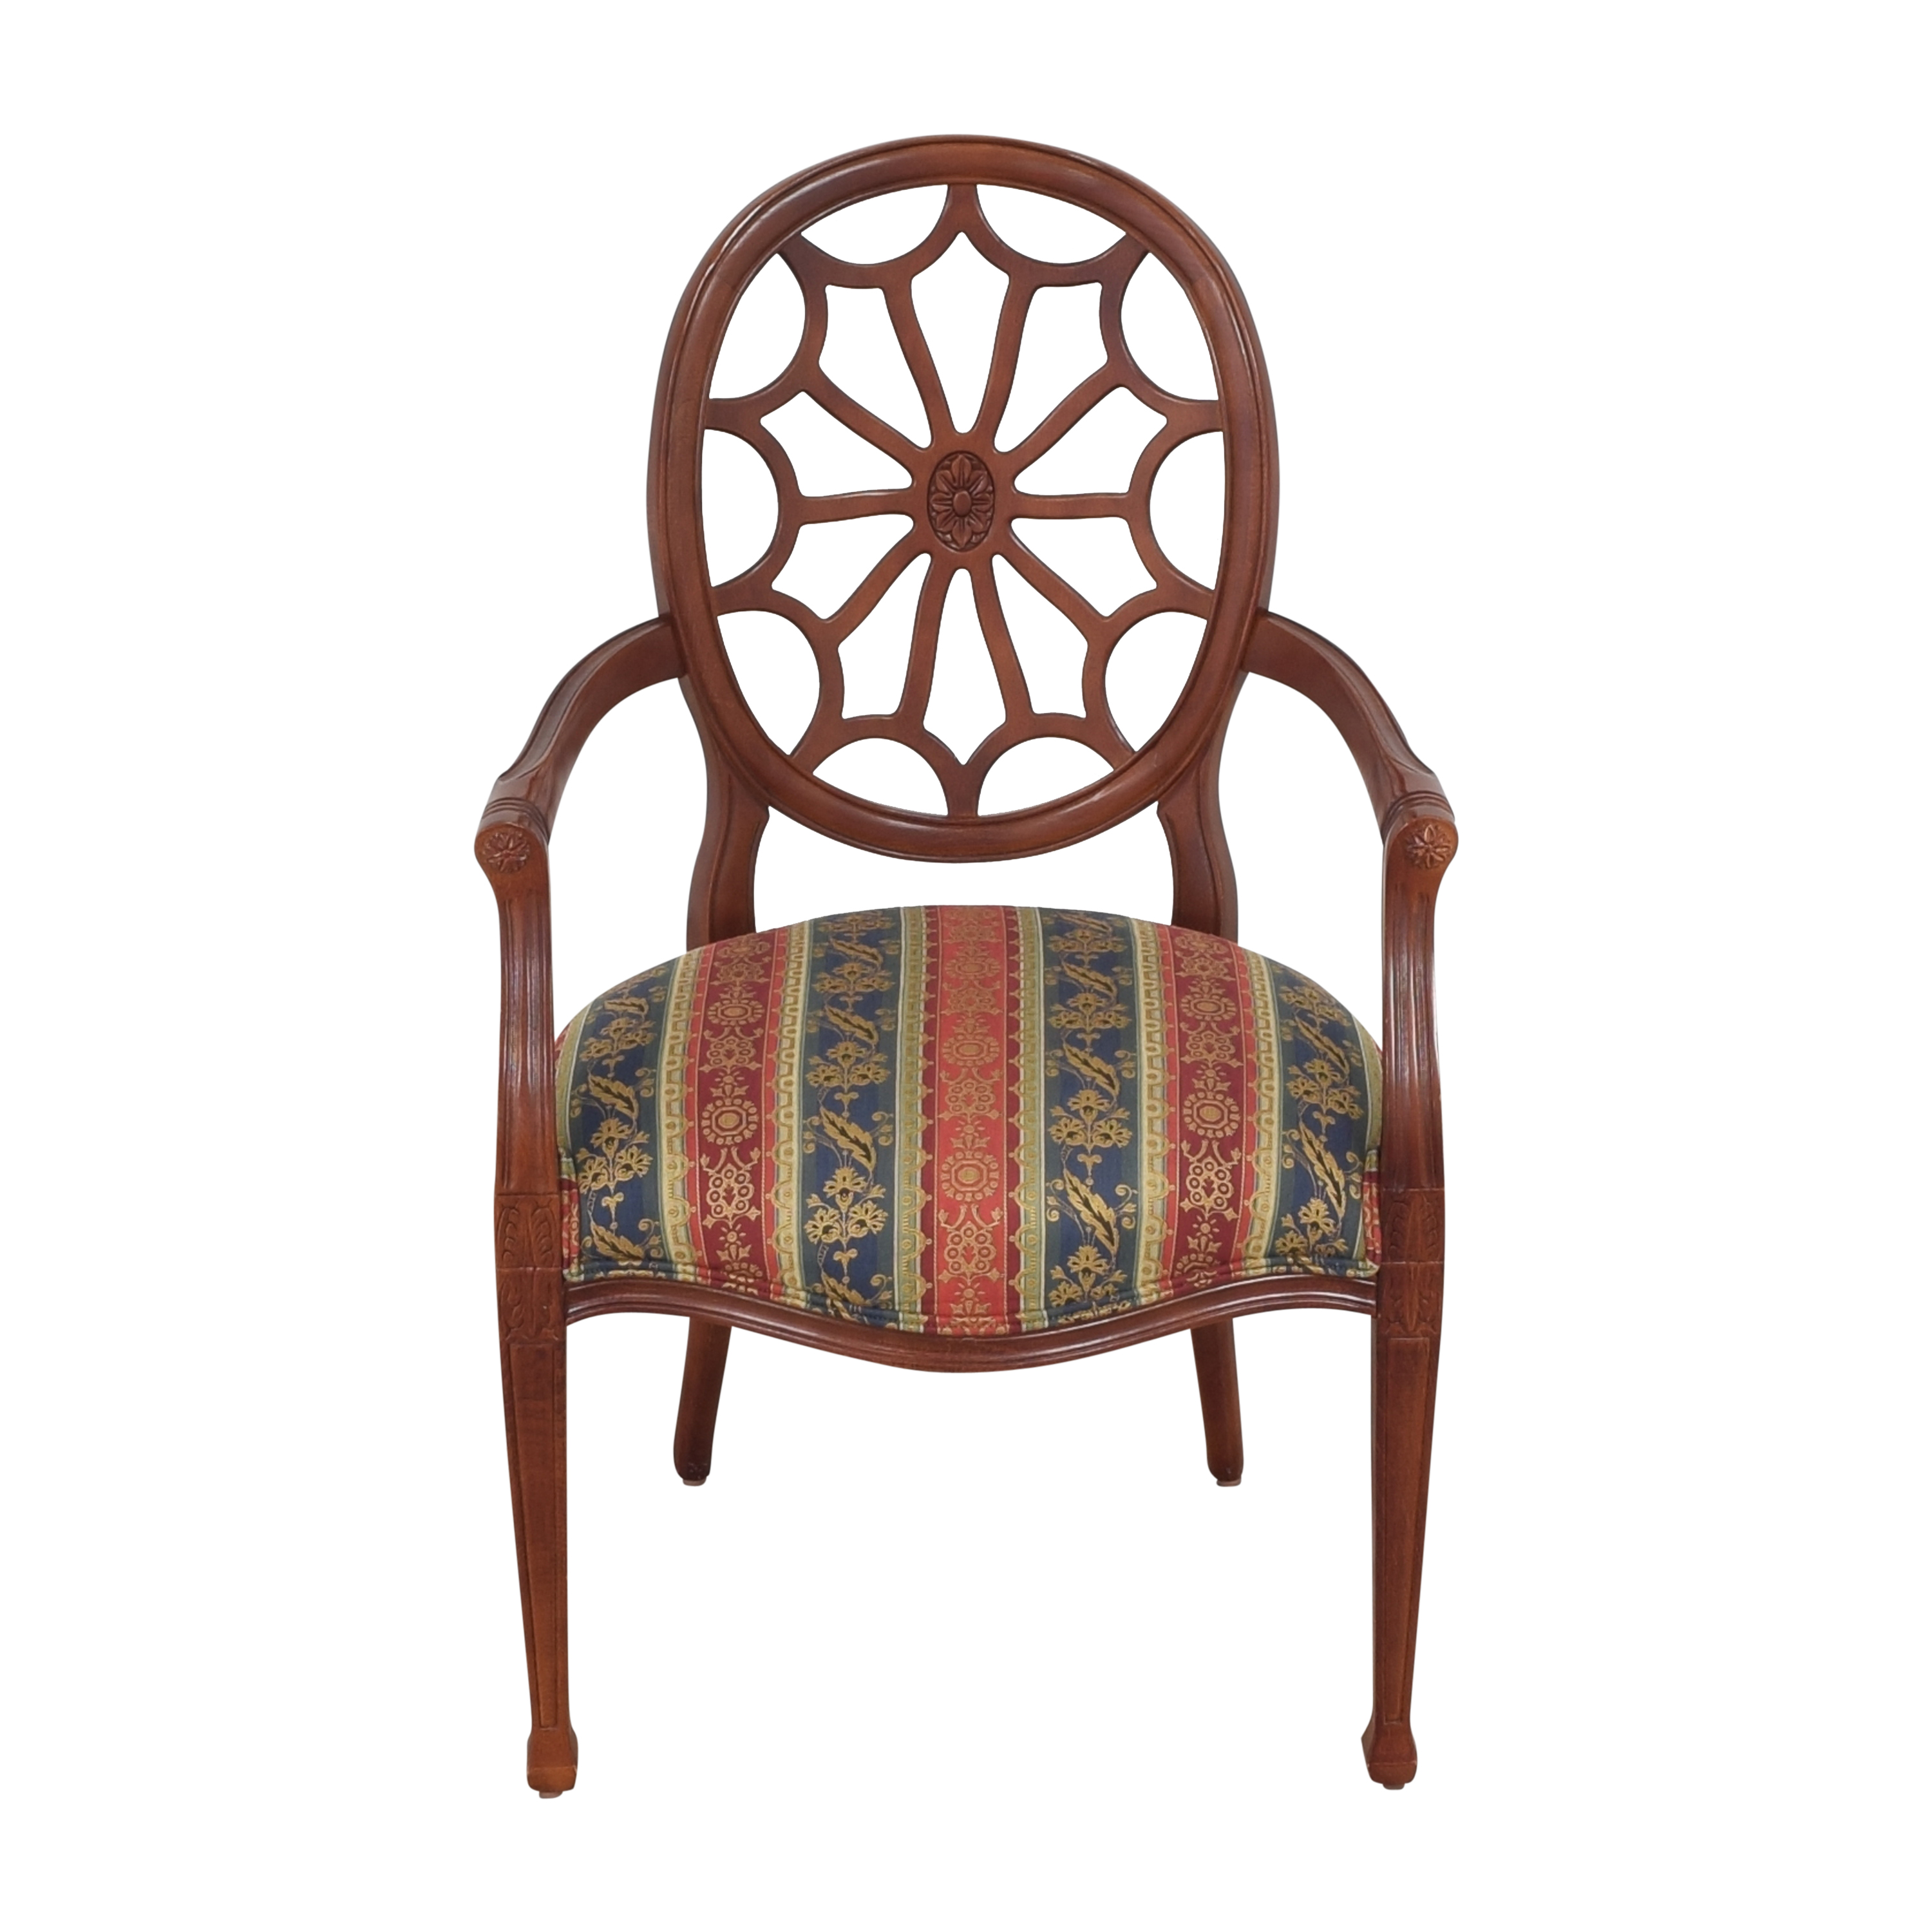 Ethan Allen Spider Back Chair / Accent Chairs